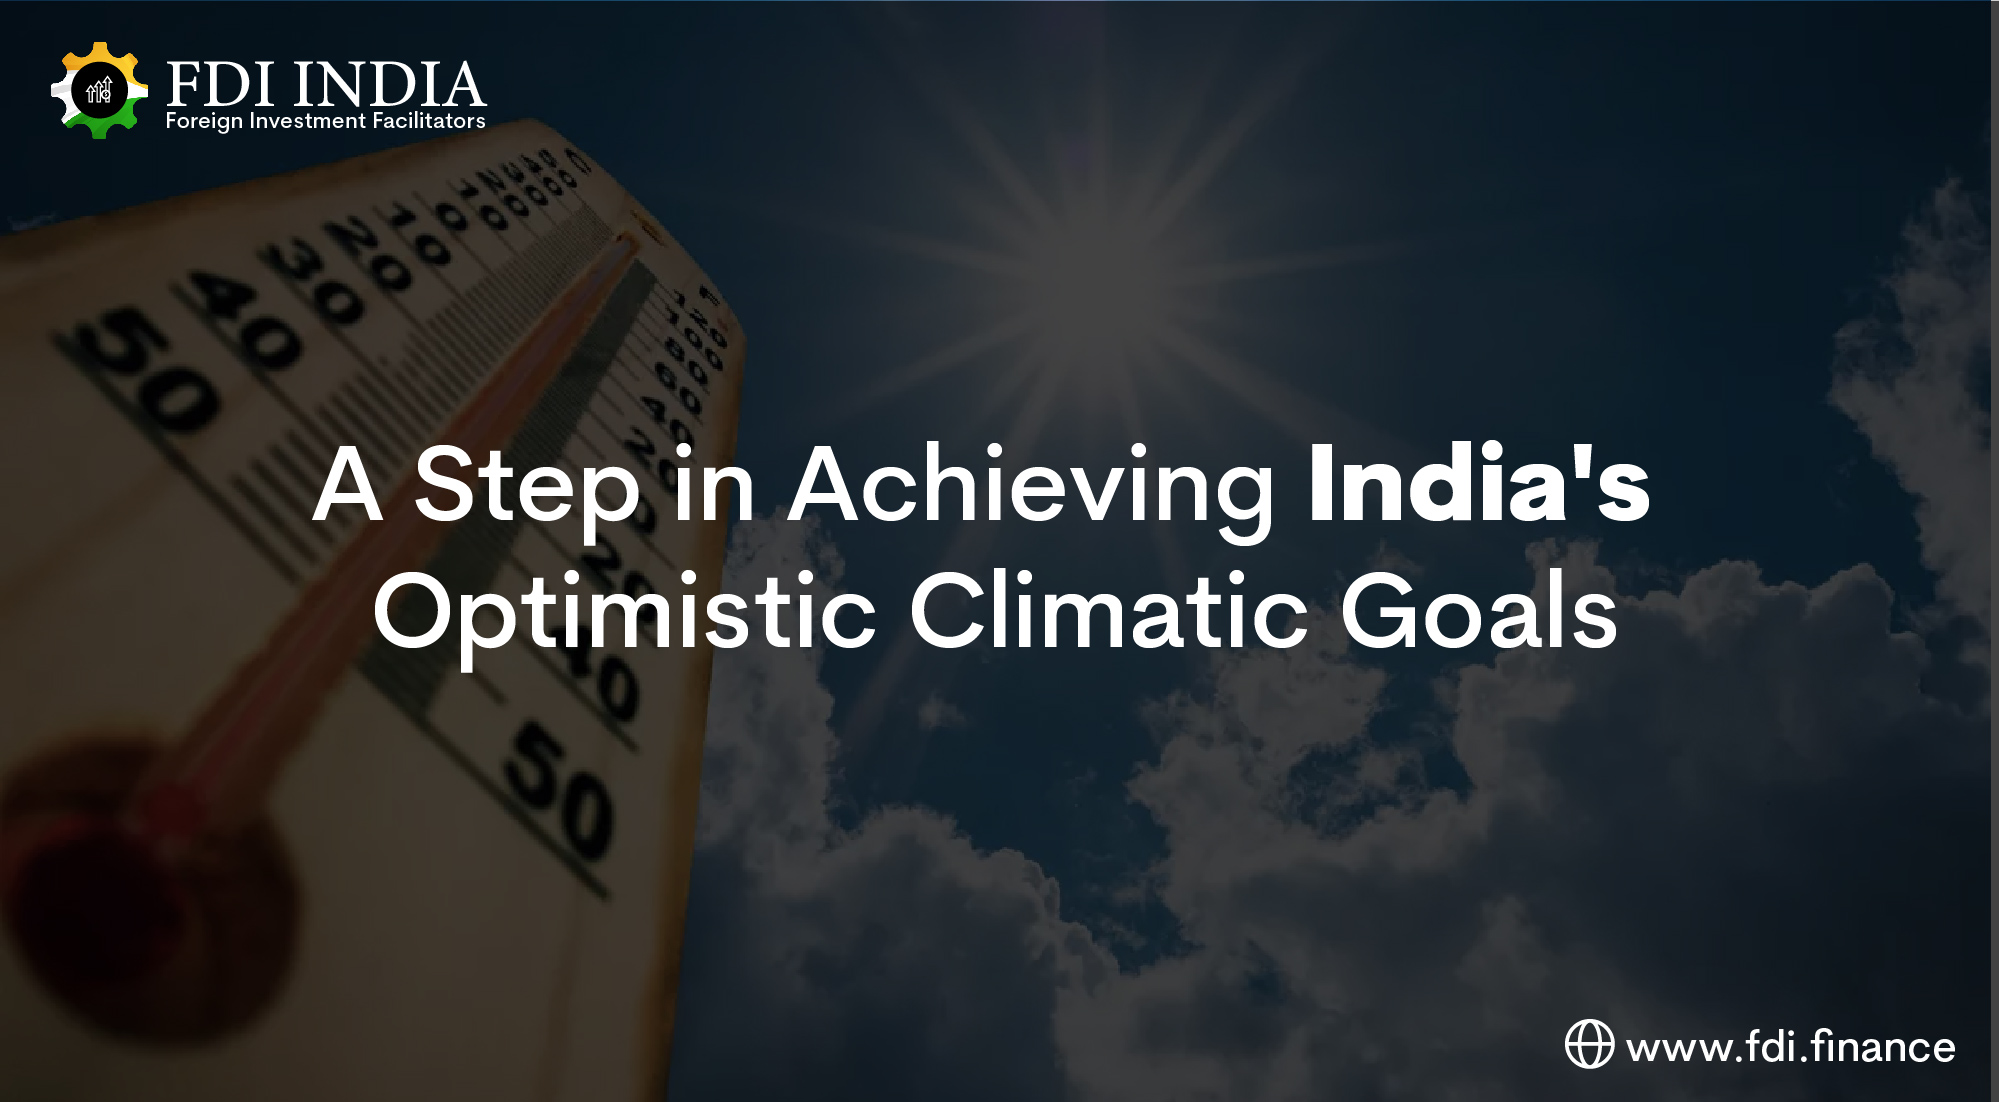 A Step in Achieving India's Optimistic Climatic Goals